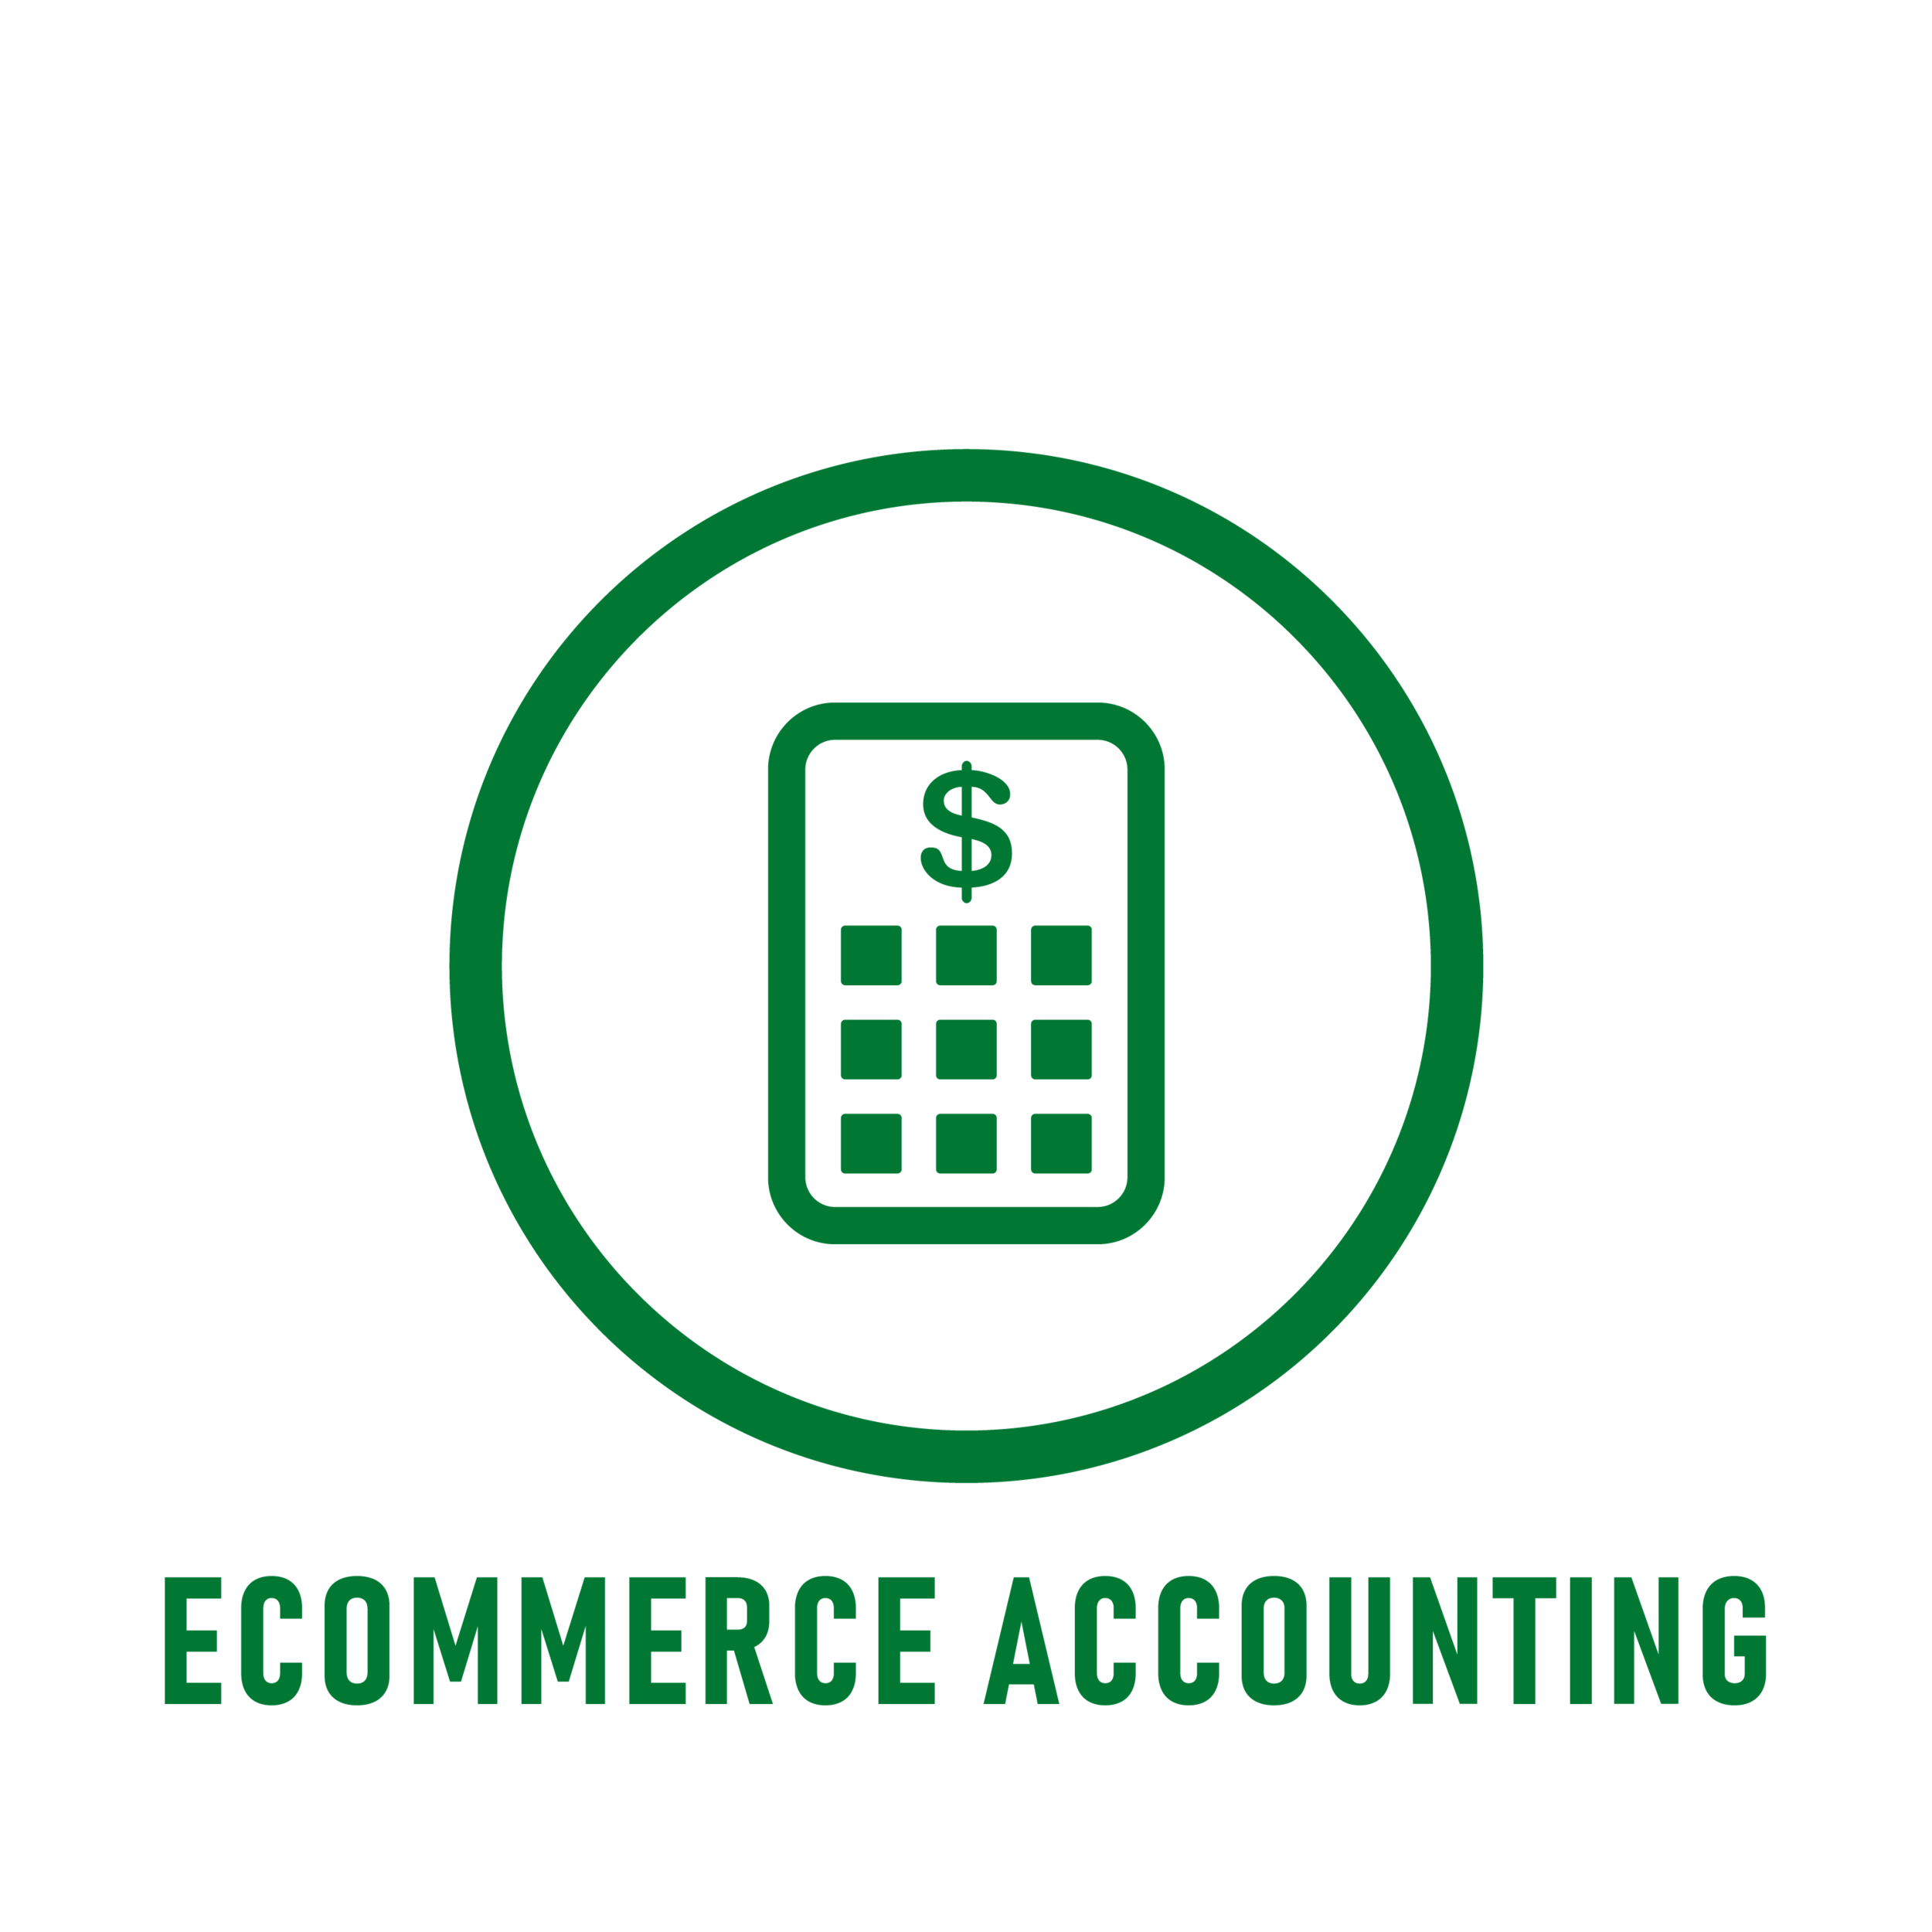 soniaturnbull_ECOMMERCE-ACCOUNTING (1).png